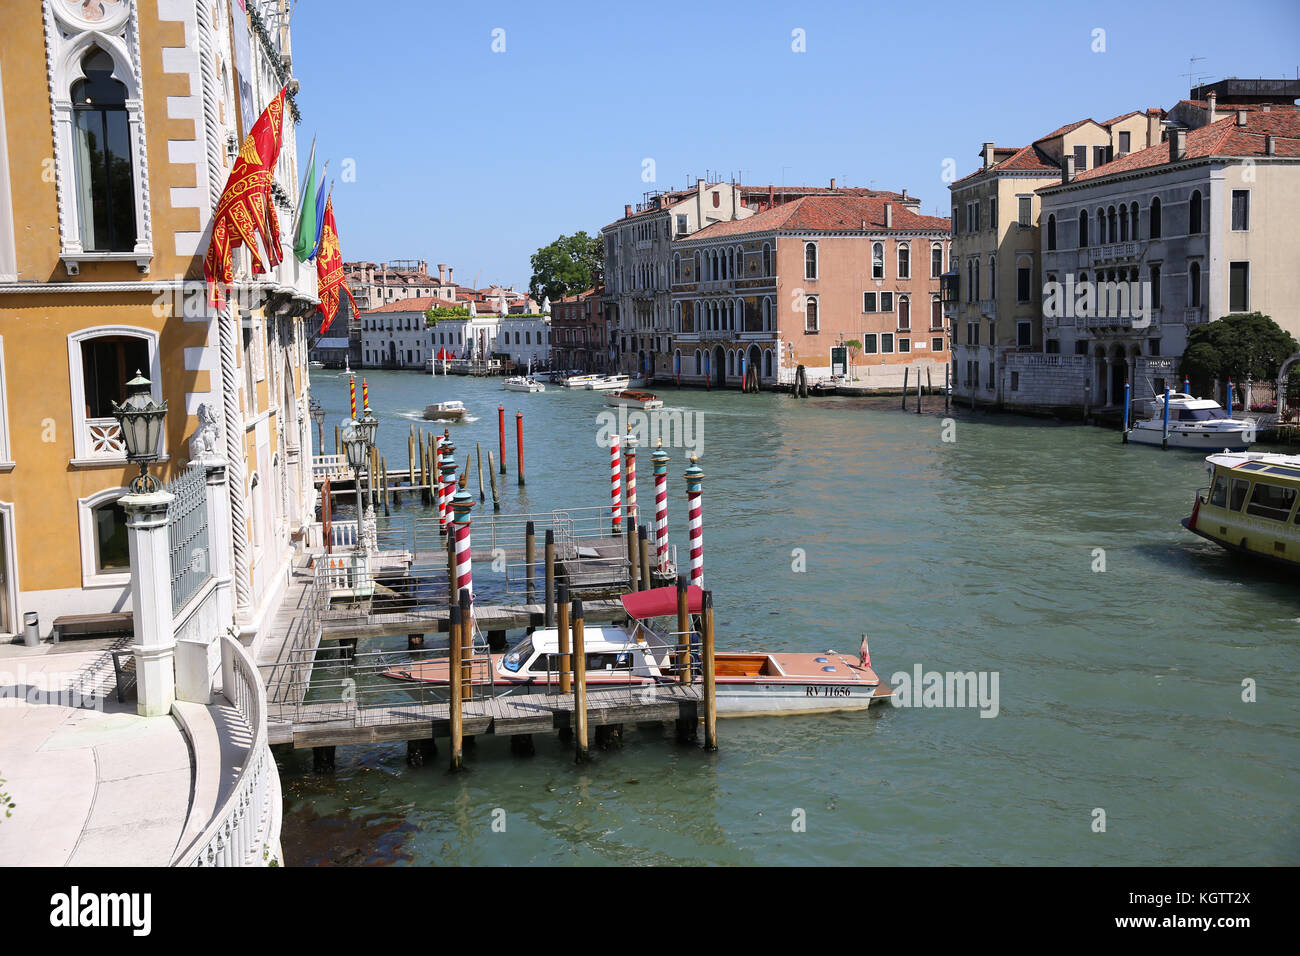 View of Canal grande from the Academia bridge Stock Photo